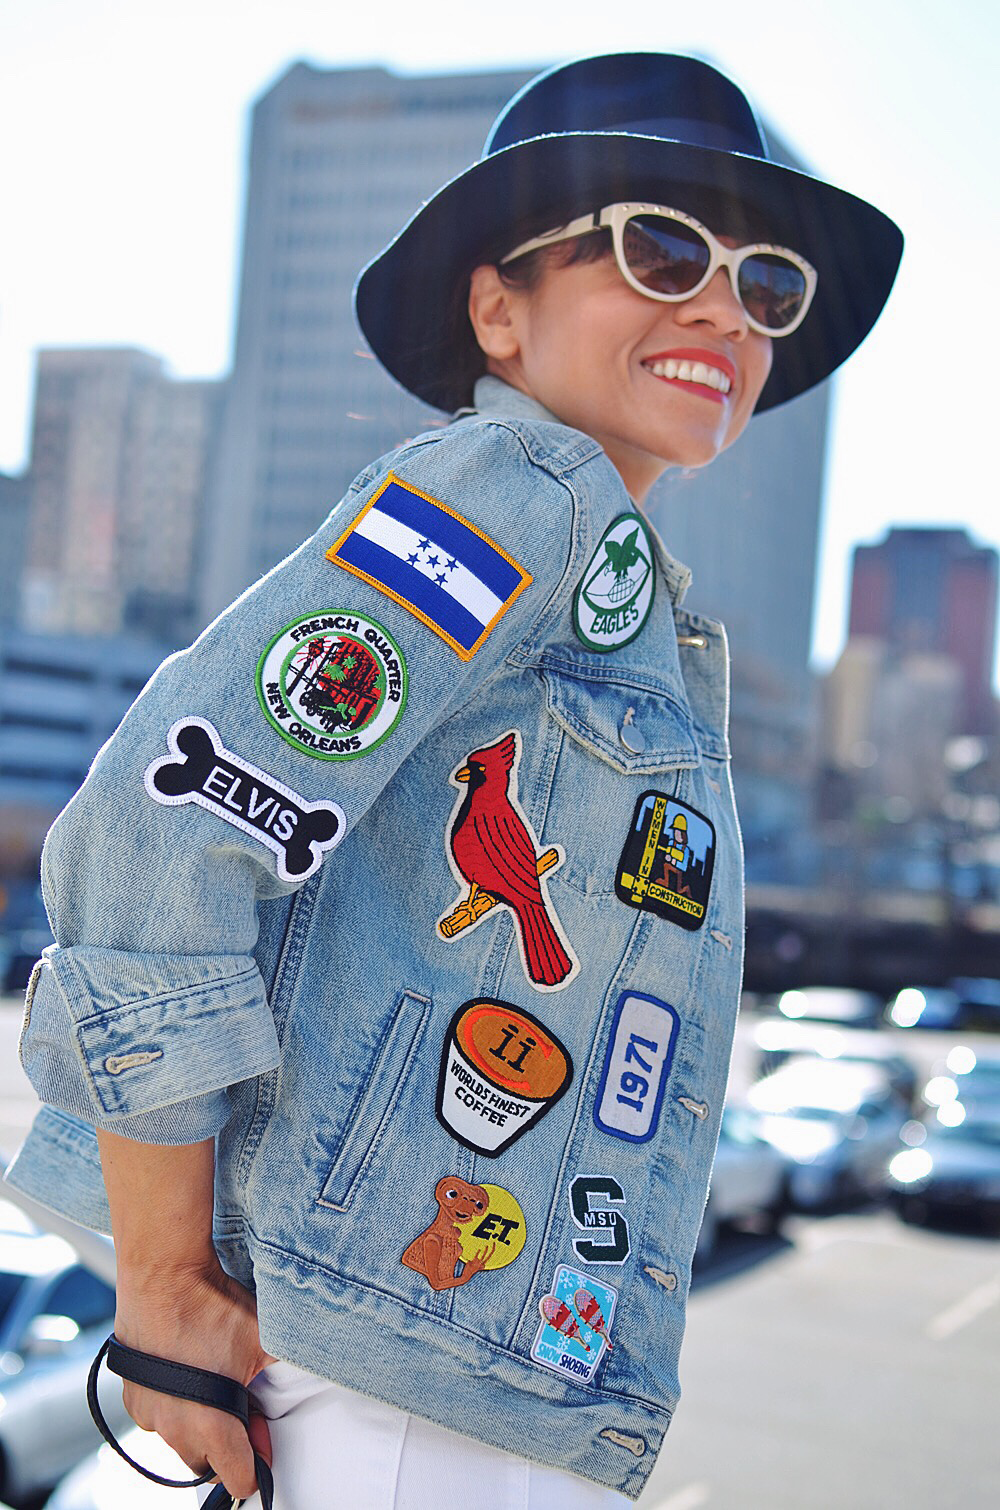 Patches on jacket